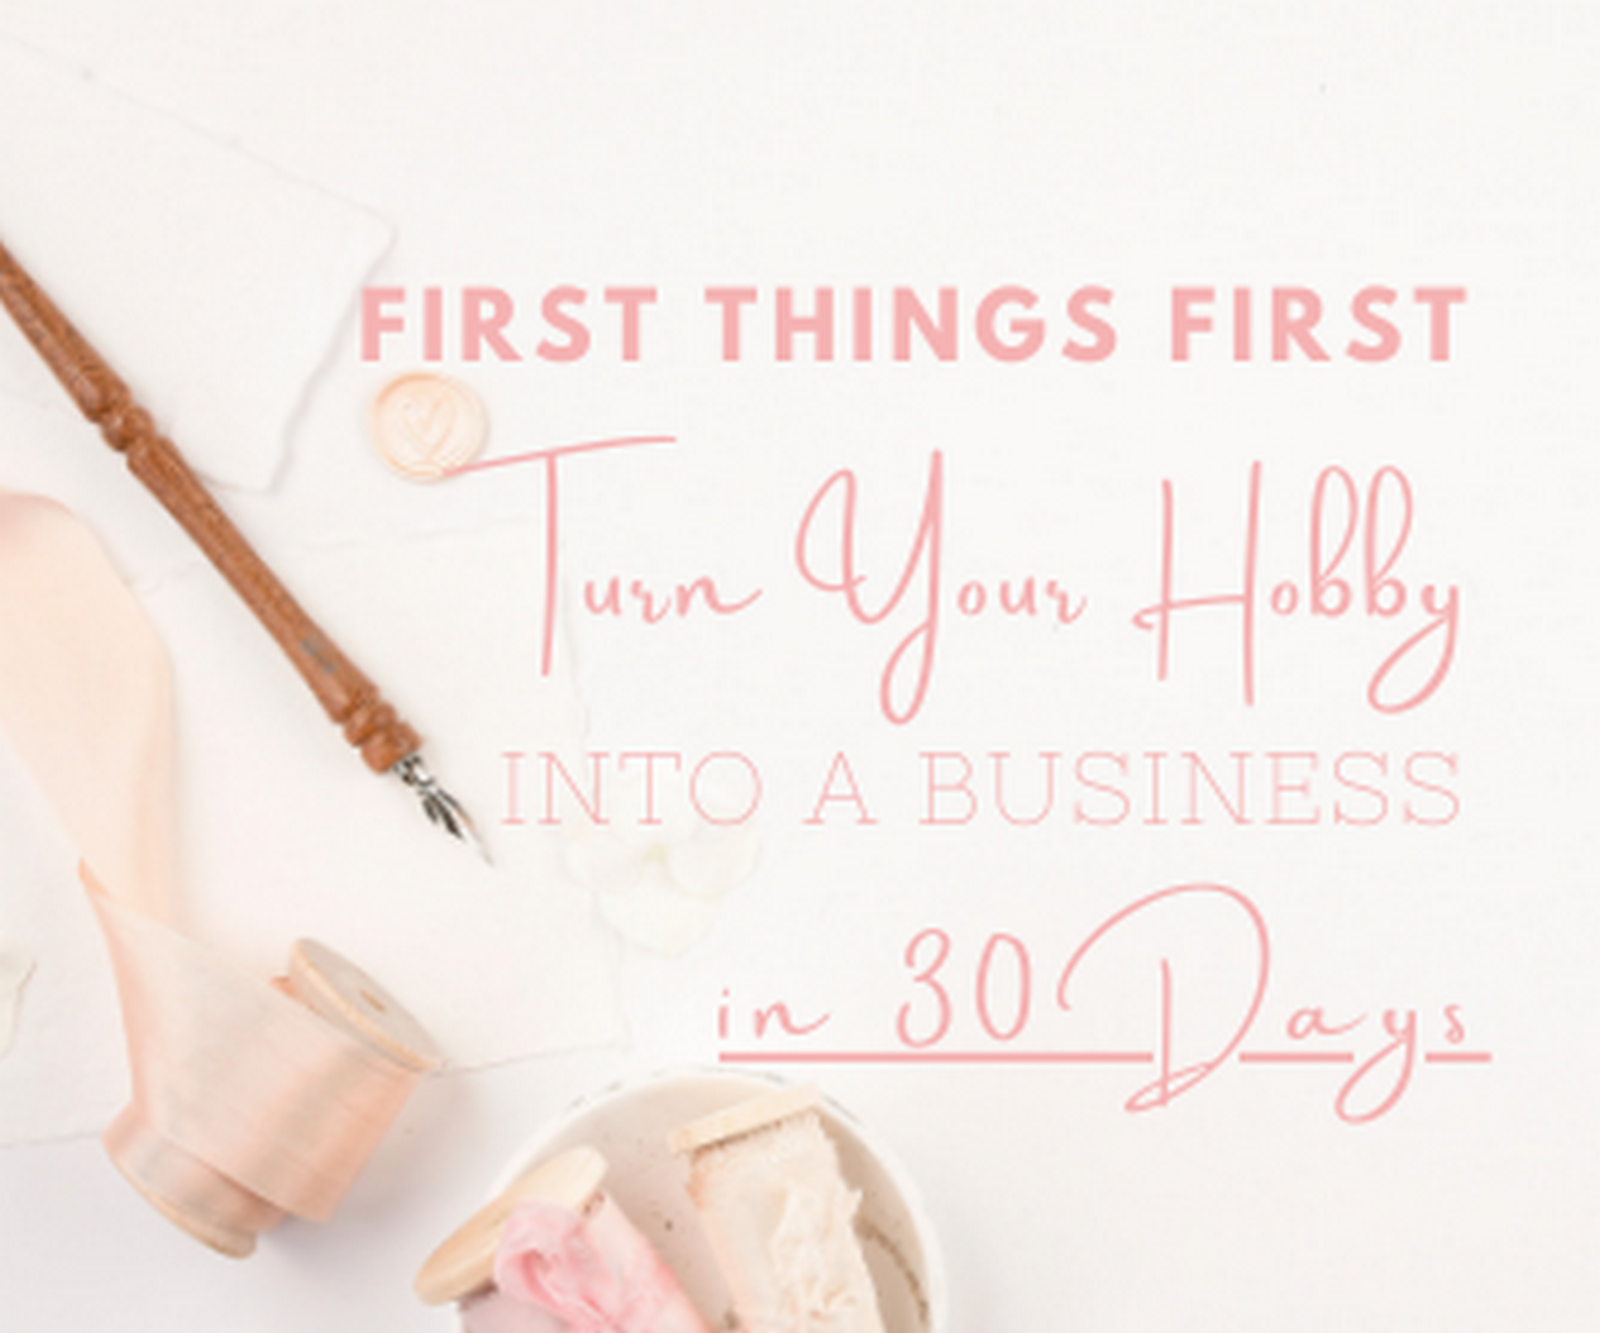 cherylphan.com - First Things First